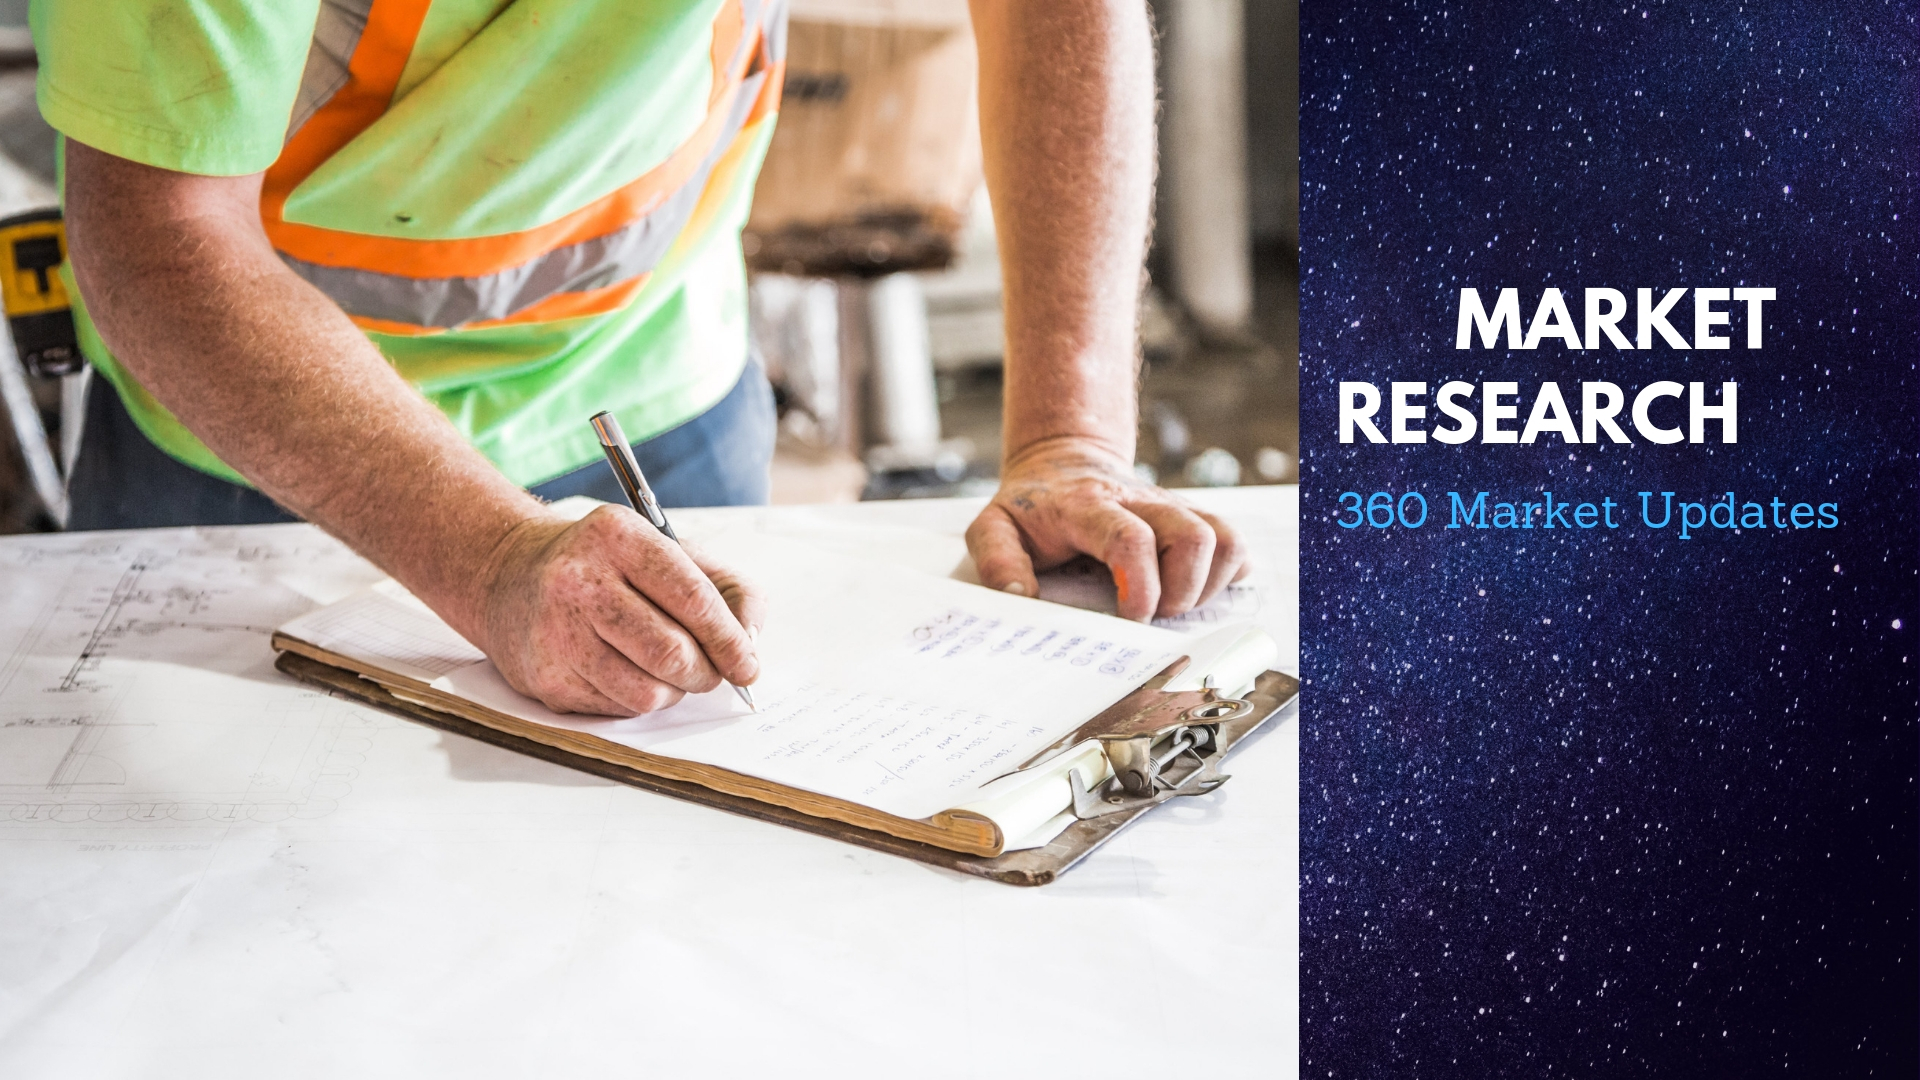 Non-Halogenated Flame Retardants Market in 360MarketUpdates.com